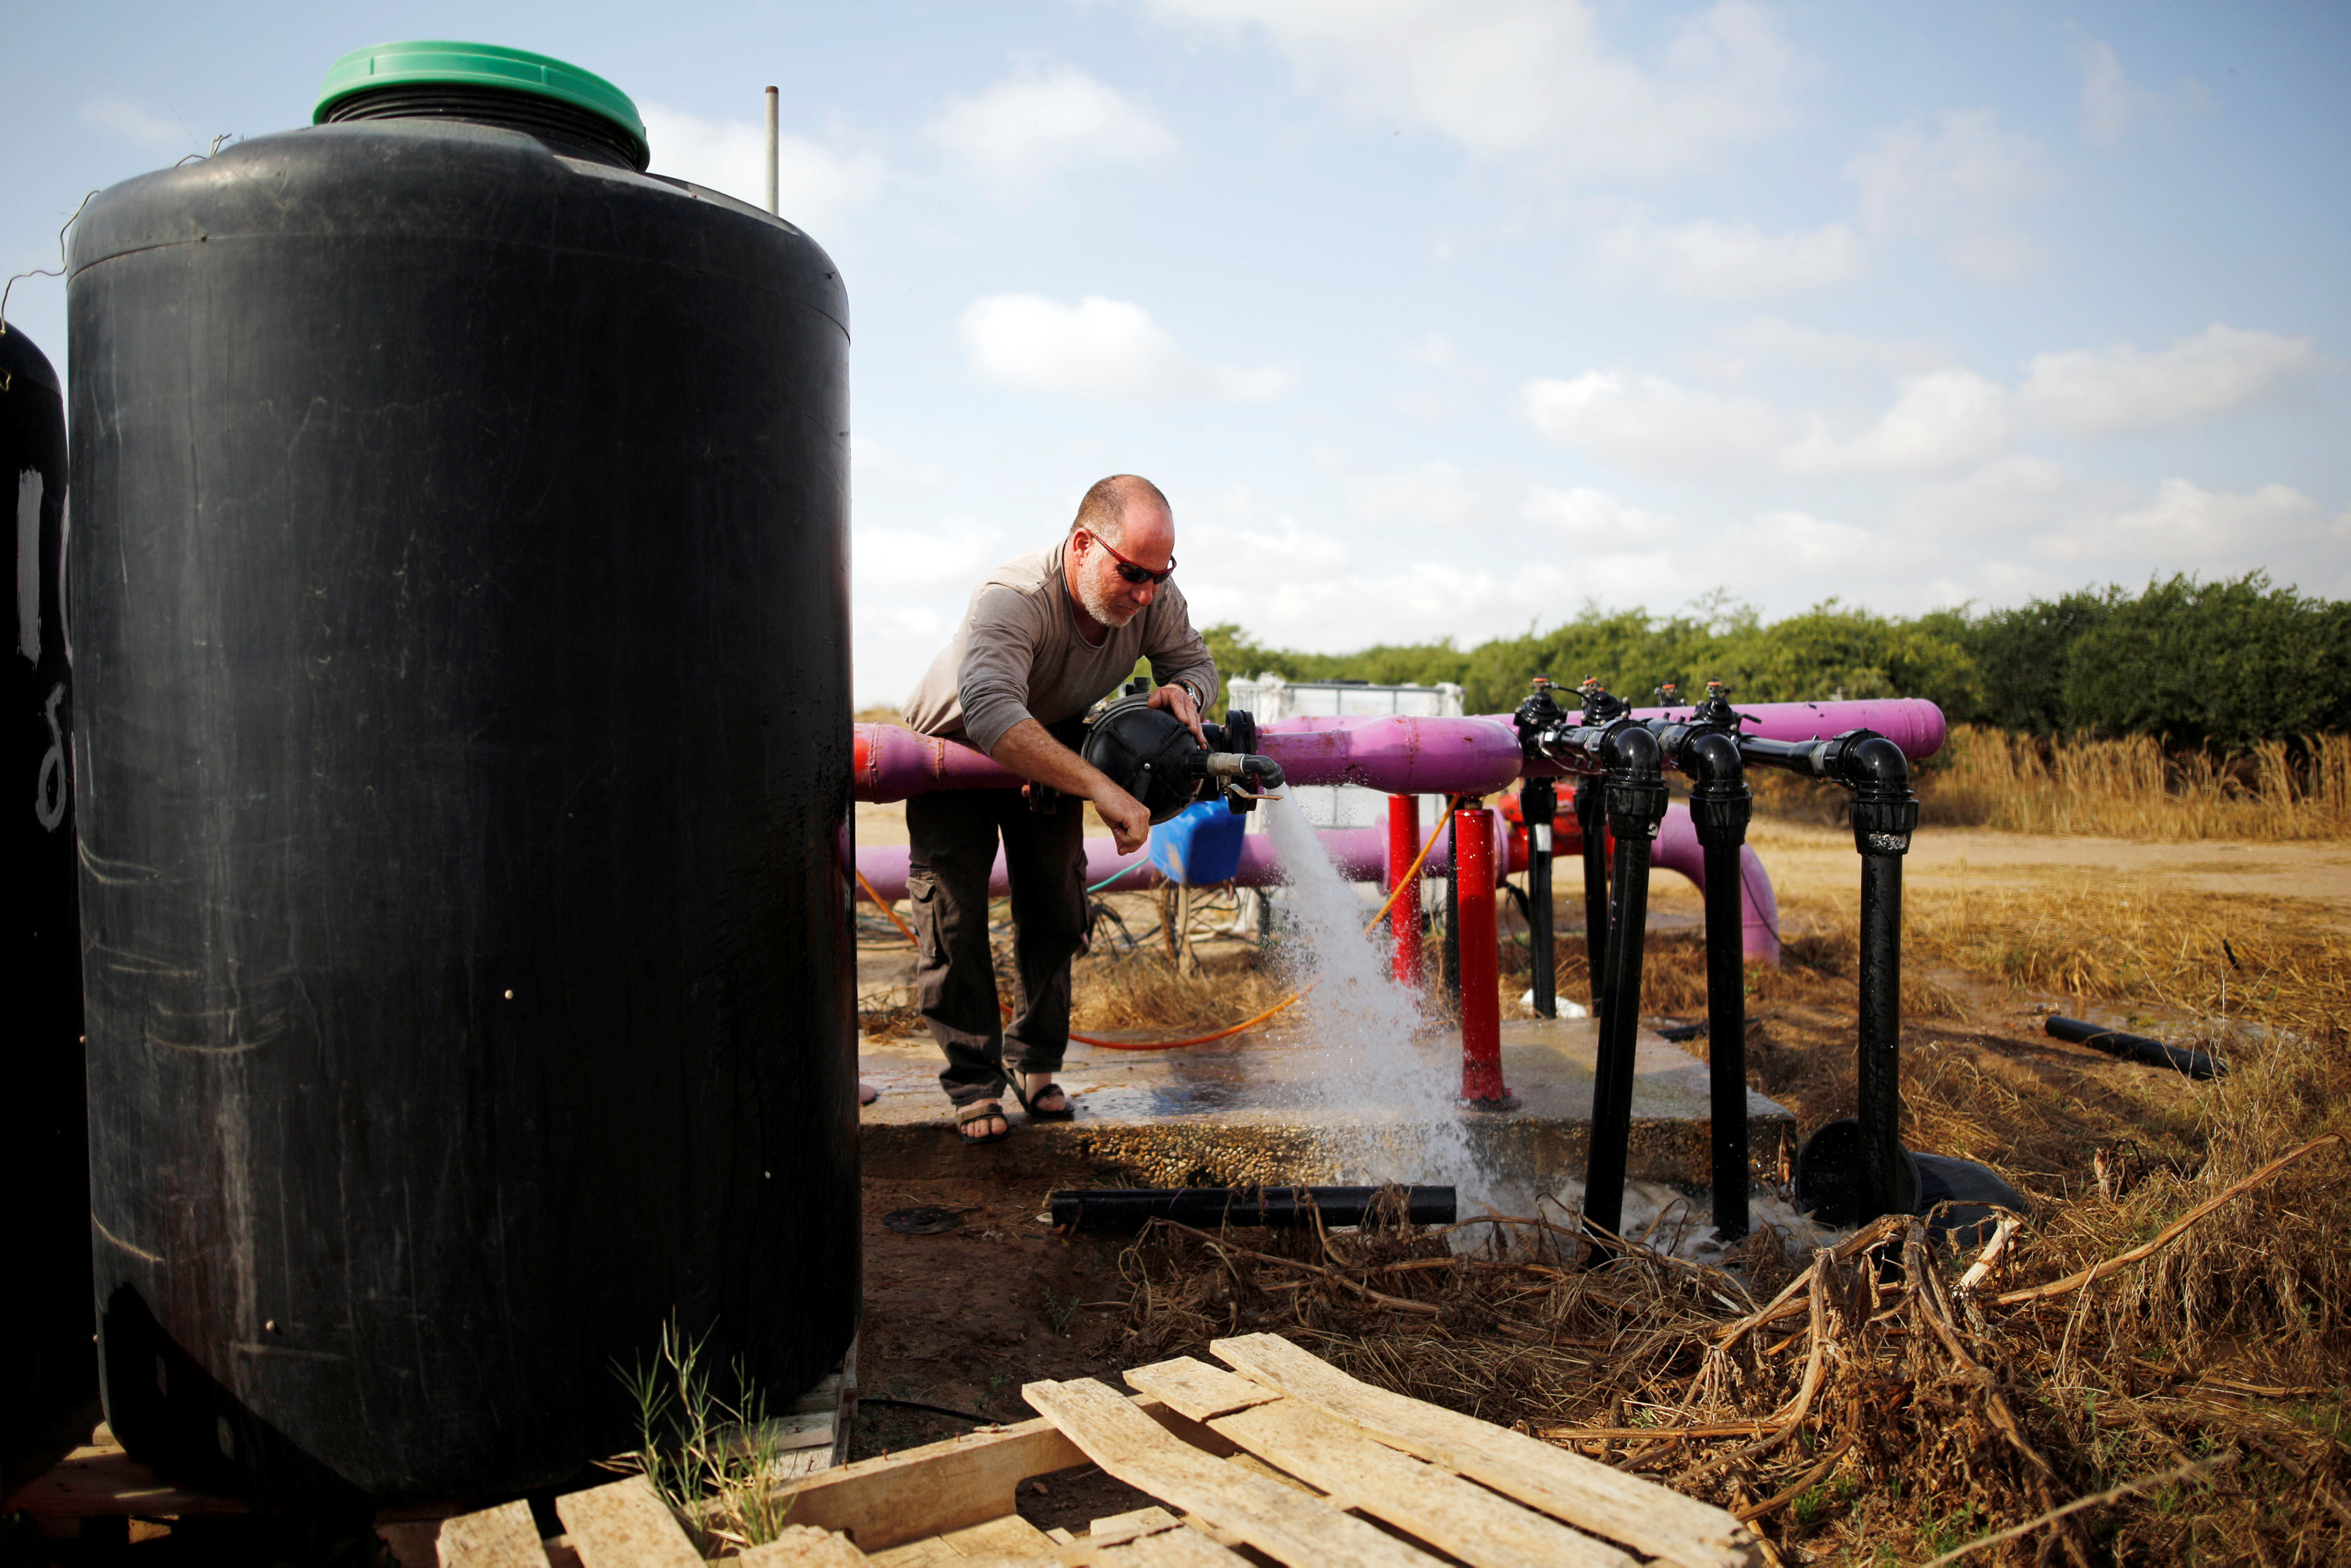 A farmer tends to a water faucet in a field in Kibbutz Nahal Oz, near the Gaza Strip border, Israel April 8, 2018. REUTERS/Amir Cohen